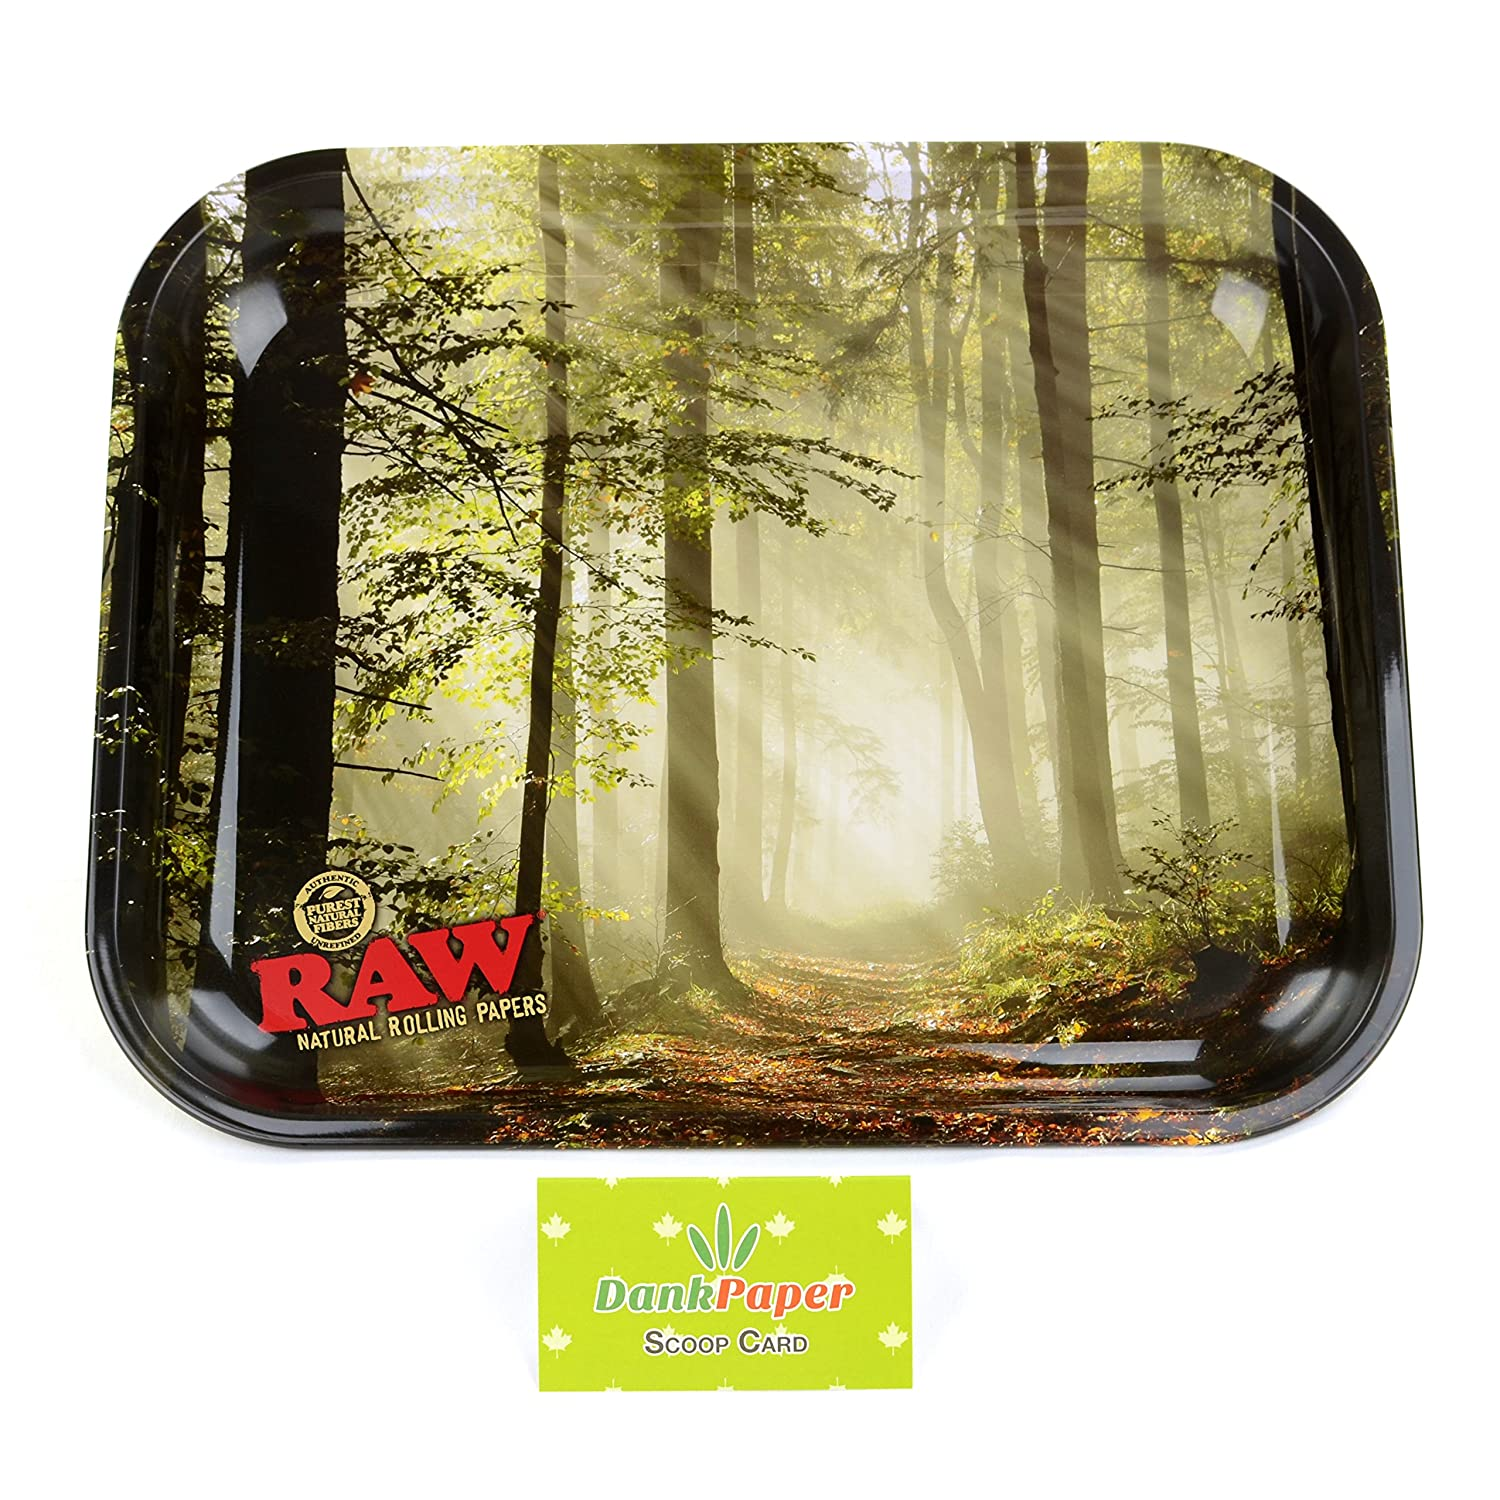 Raw Natural Unrefined Rolling Papers Smokey Rolling Tray Large with Dank Paper Scoop Card (Large) Raw & Dank Paper